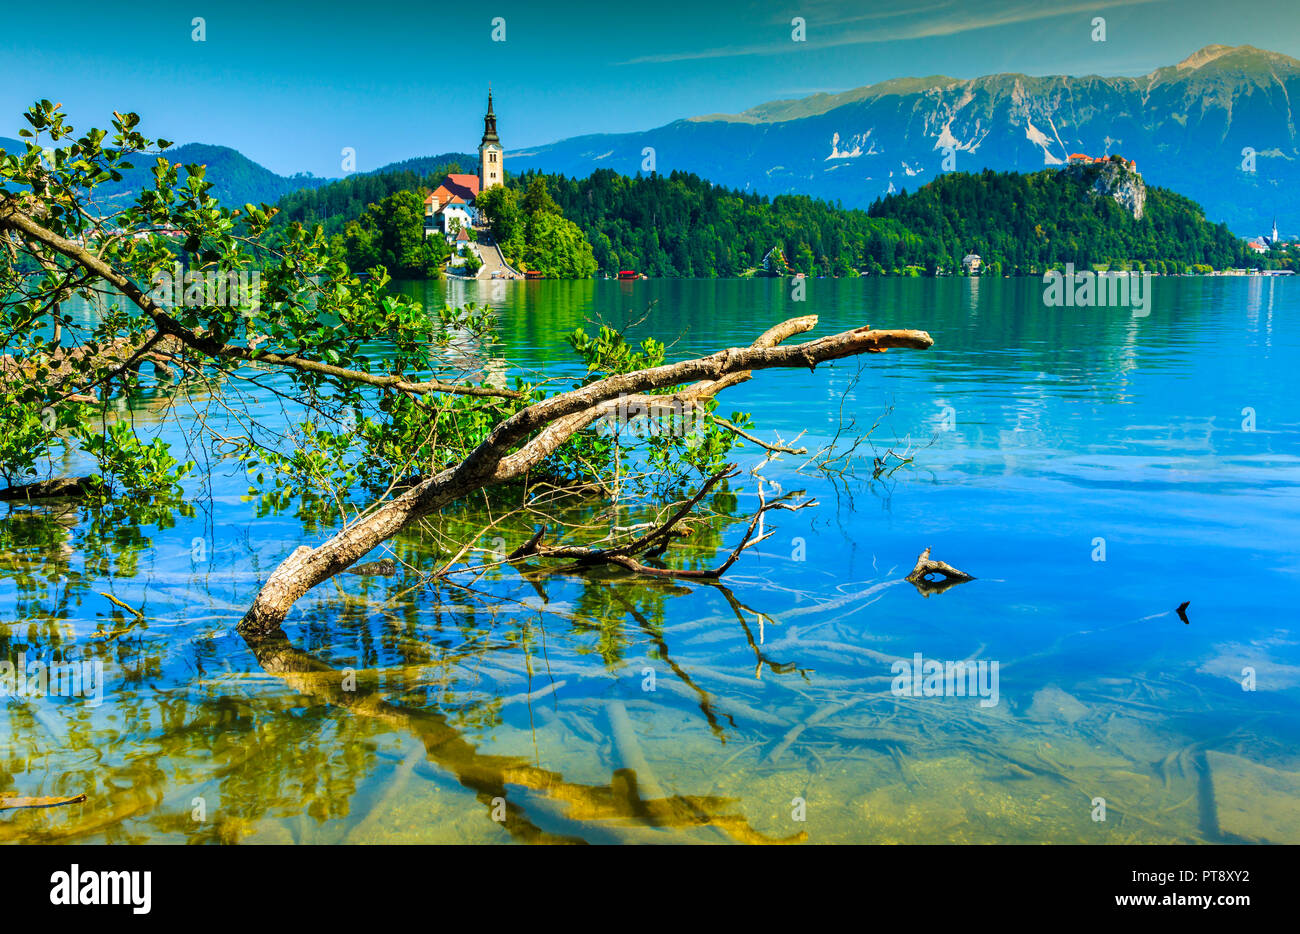 Castle and church in a lake landscape. - Stock Image